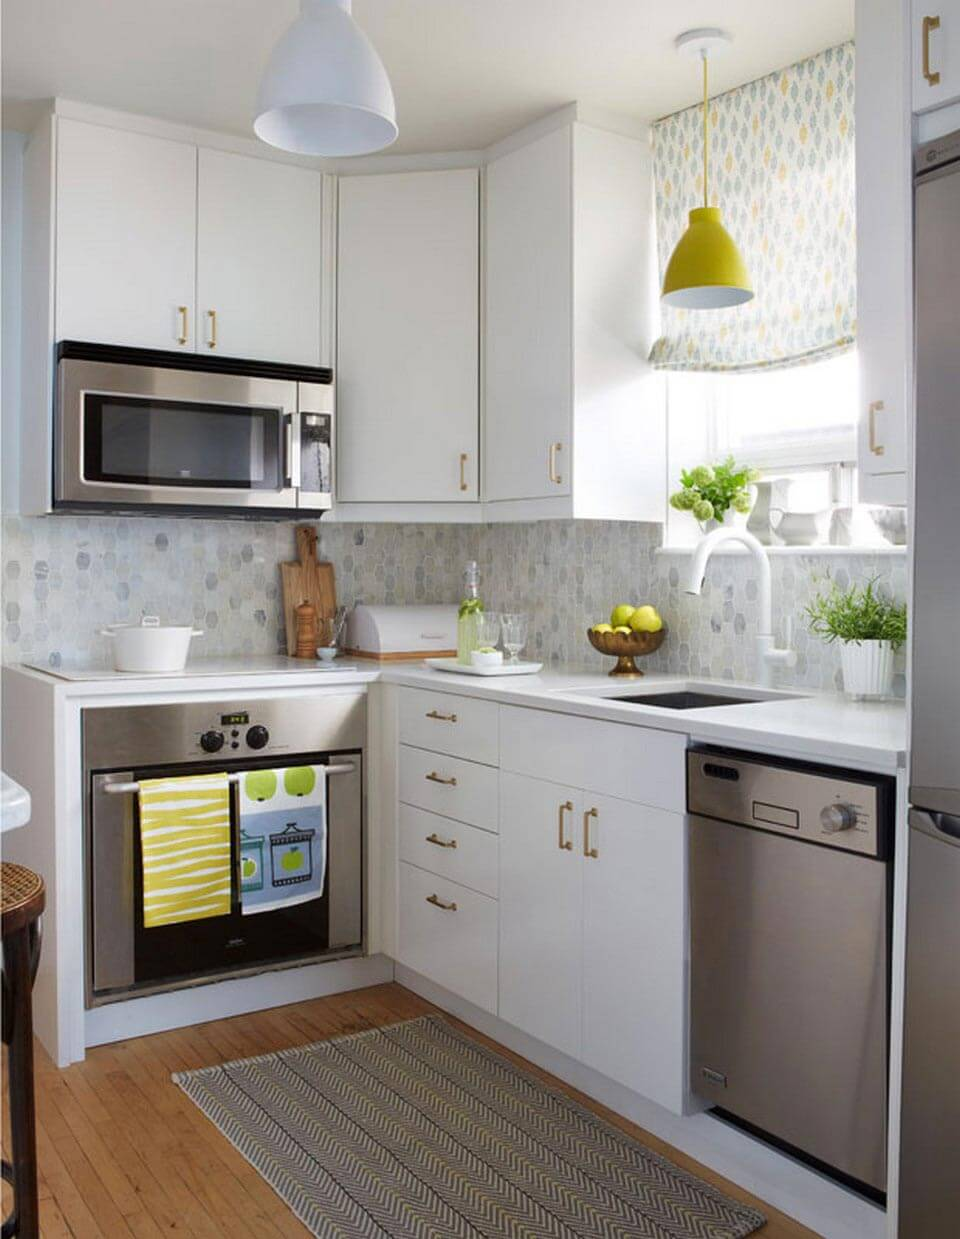 30 Best Small Kitchen Decor and Design Ideas for 2019